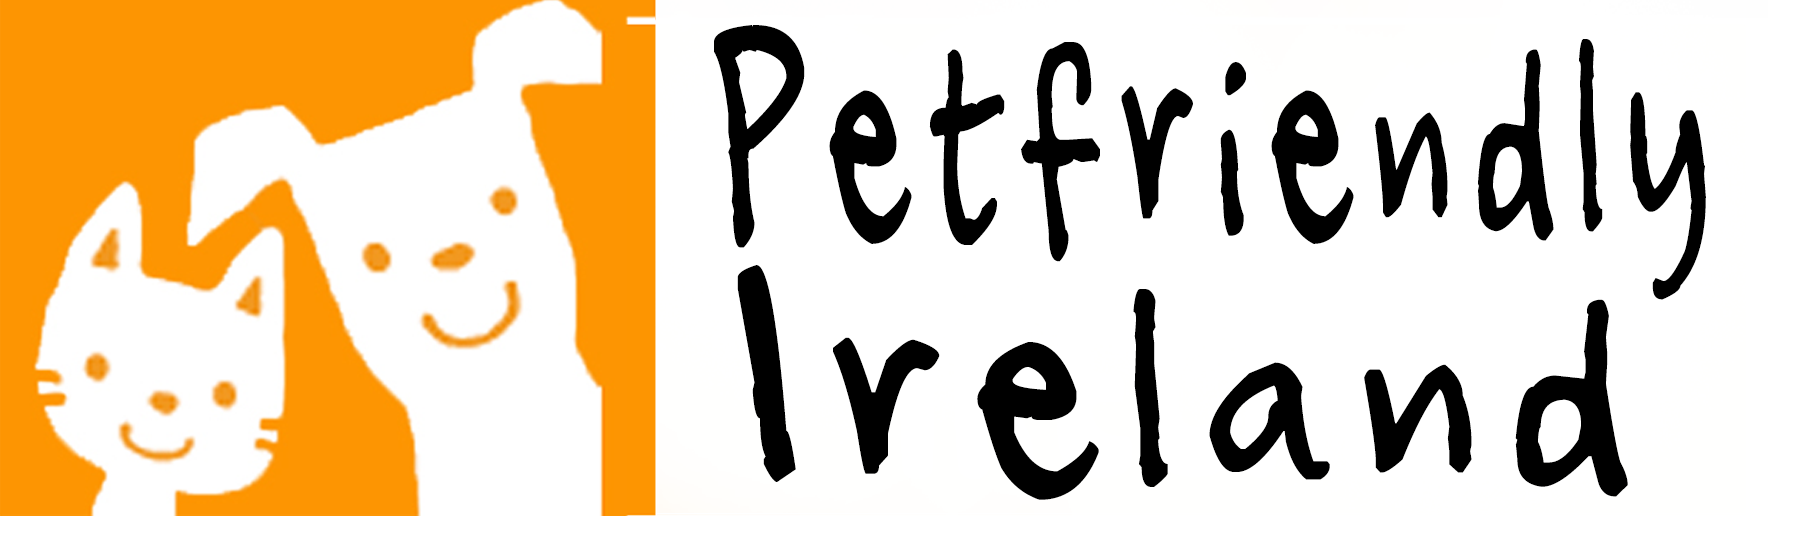 Petfriendly Ireland